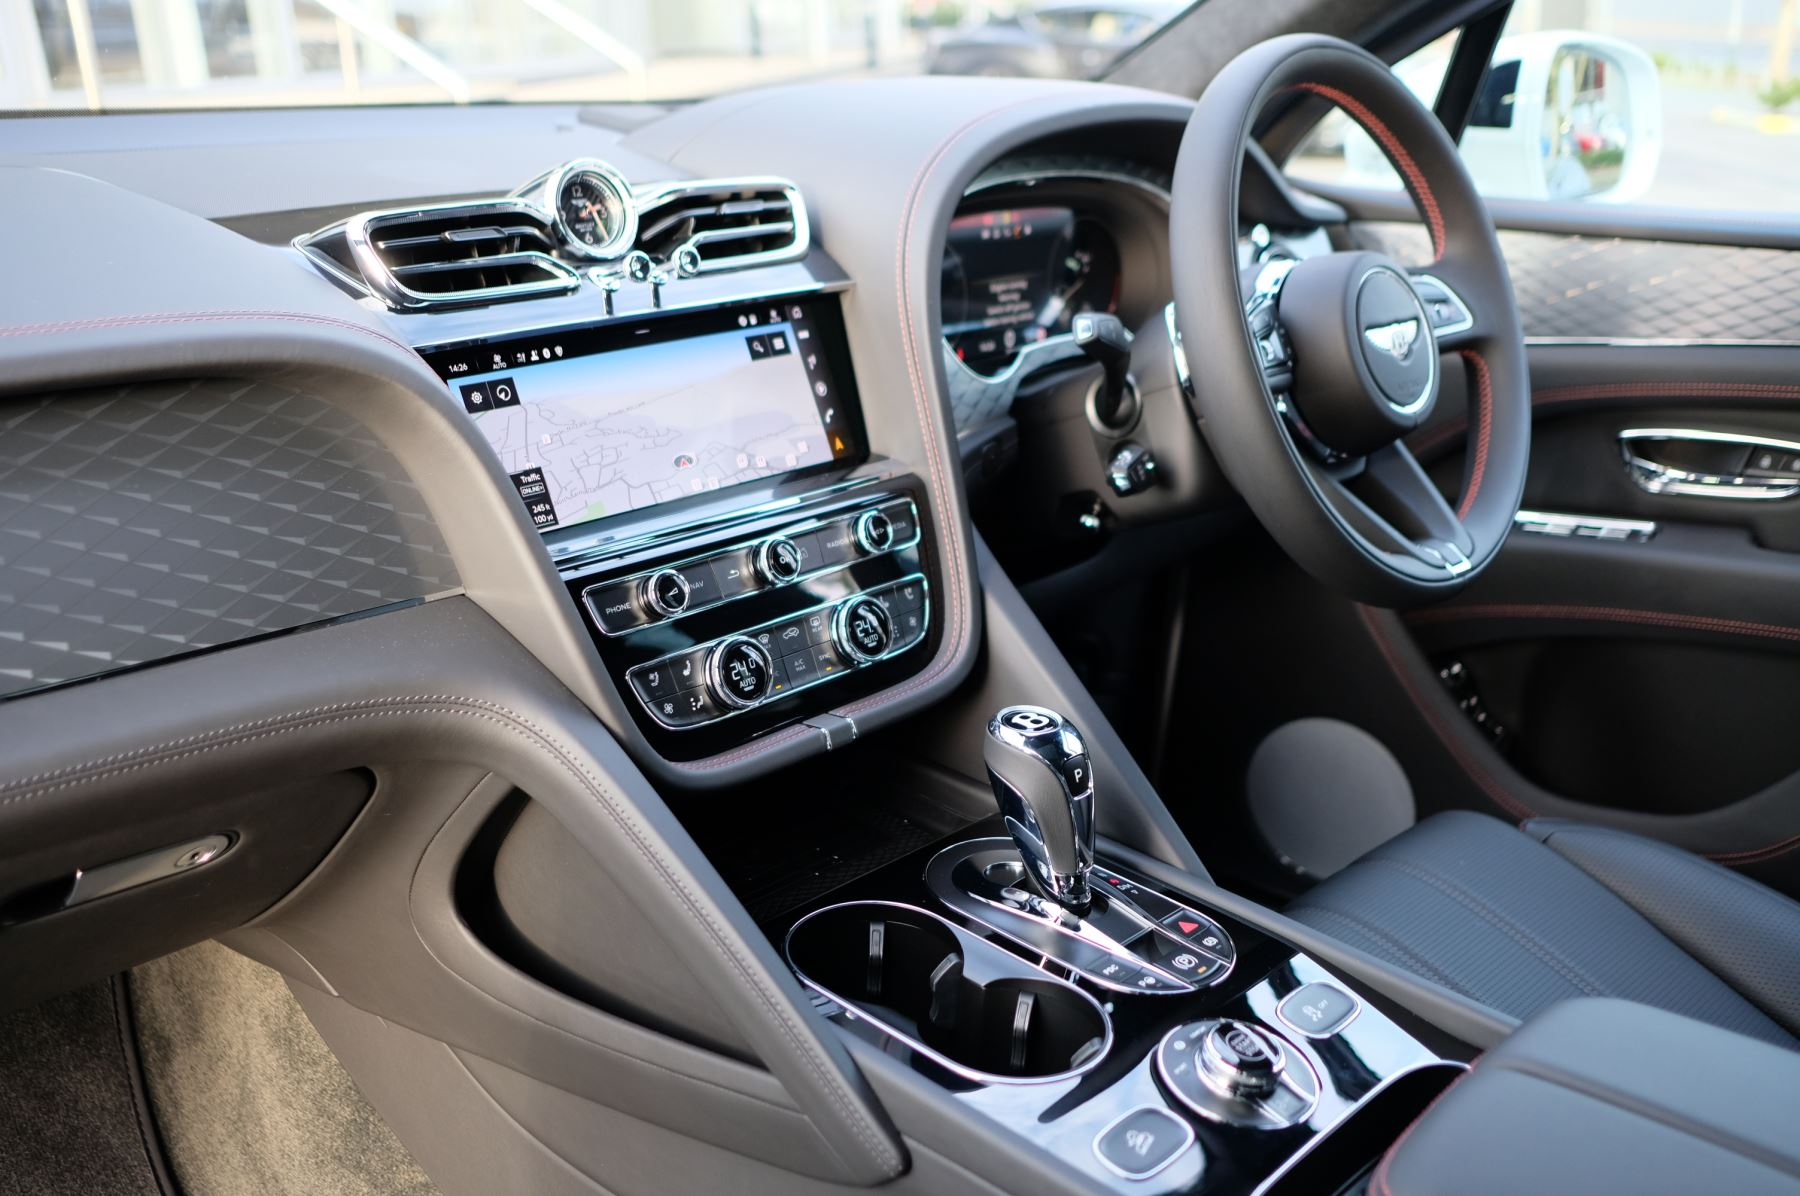 Bentley Bentayga 4.0 V8 - Touring and Front Seat Comfort Specification  image 11